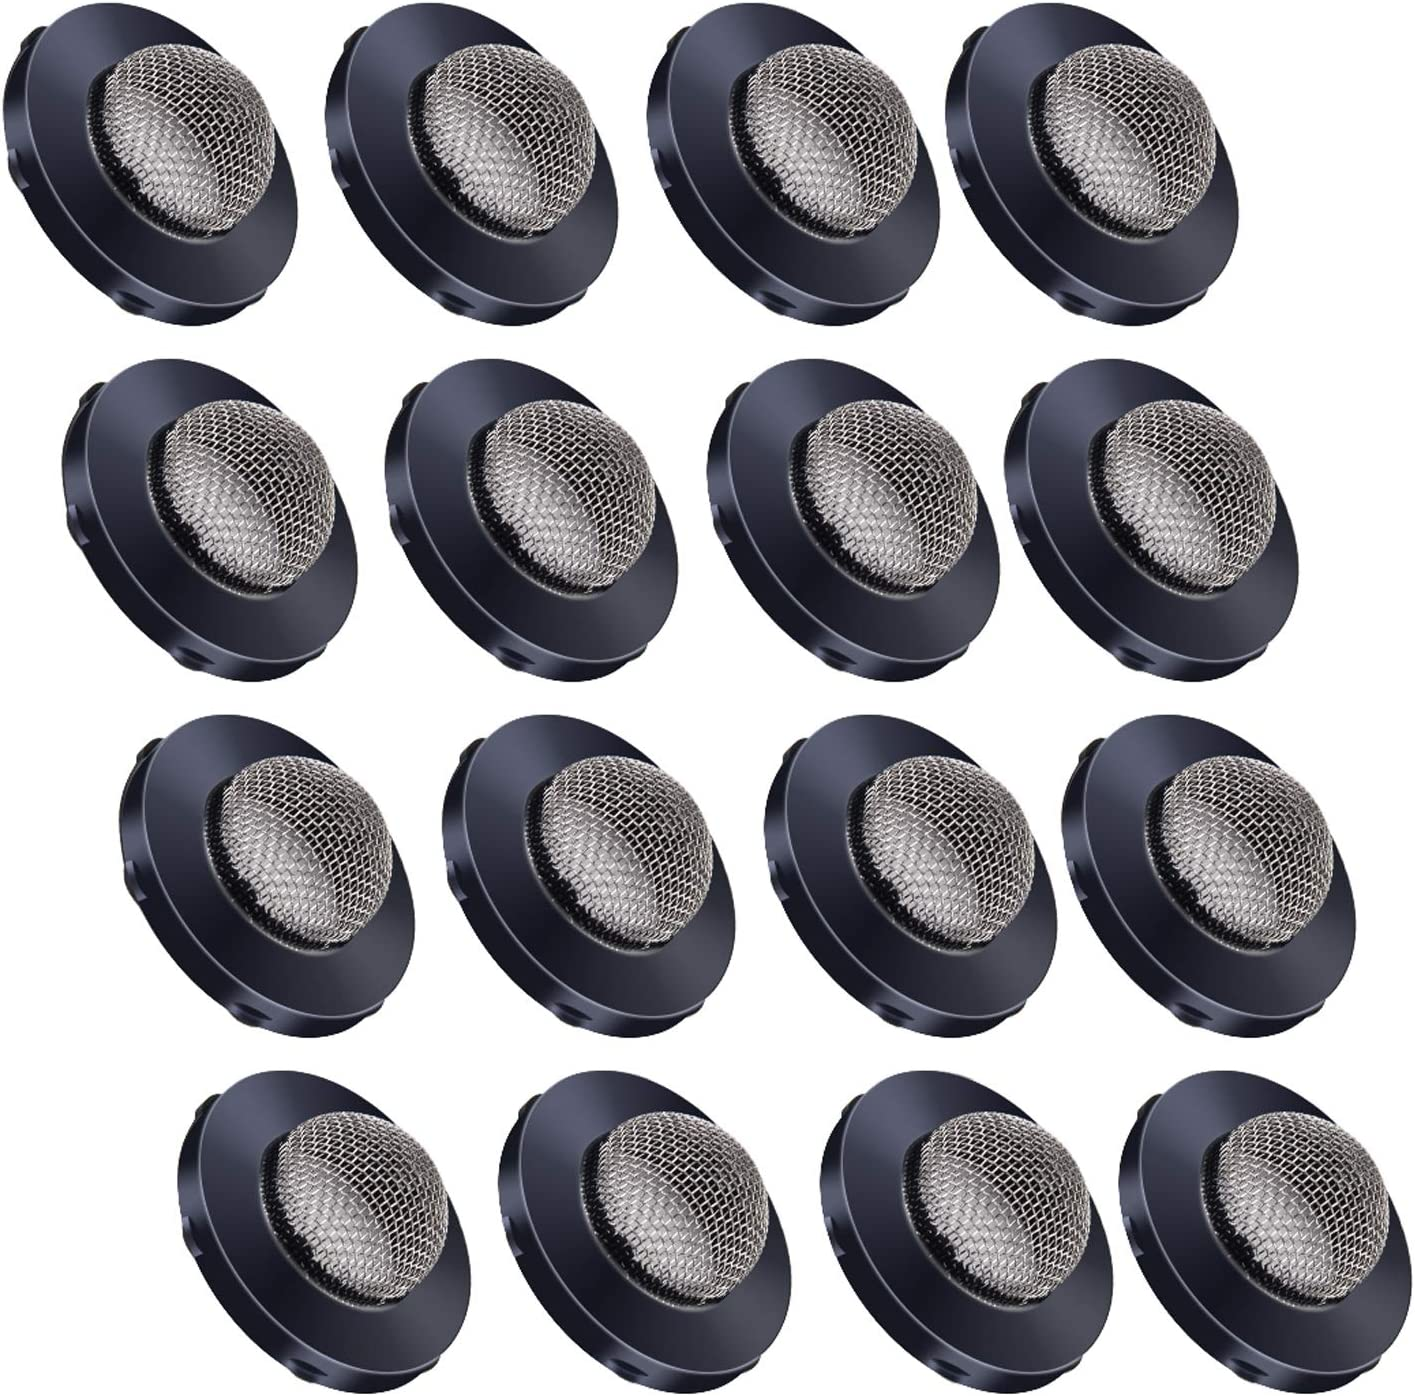 PAGOW 30pcs Hose Filter Washers, Stainless Steel Hose Screen Washers, Coupling Washer Hose Filters with Strainer, Fittings for 3/4 Inch Garden Hose Connector & Washing Machine